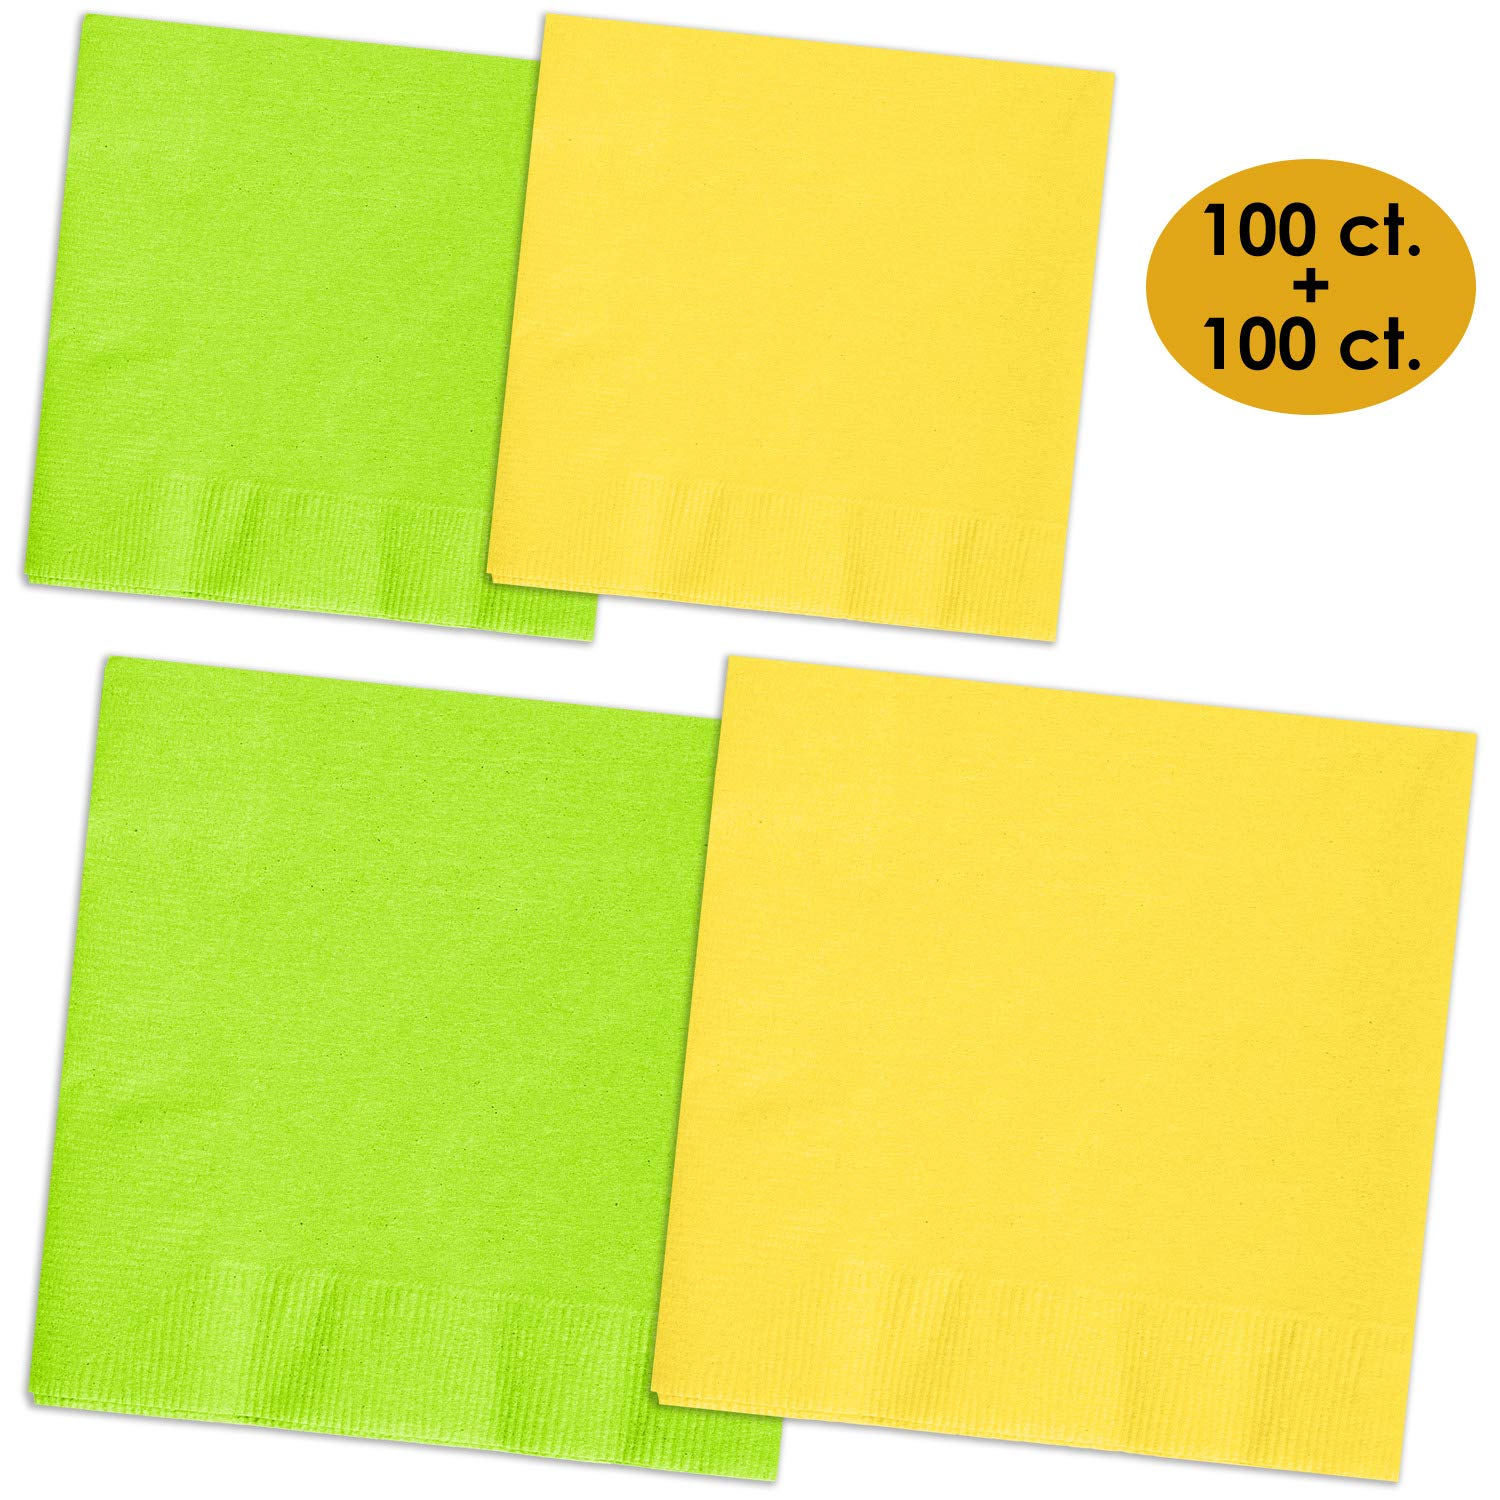 200 Napkins - Lime Green & Lemon Yellow - 100 Beverage Napkins + 100 Luncheon Napkins, 2-Ply, 50 Per Color Per Type